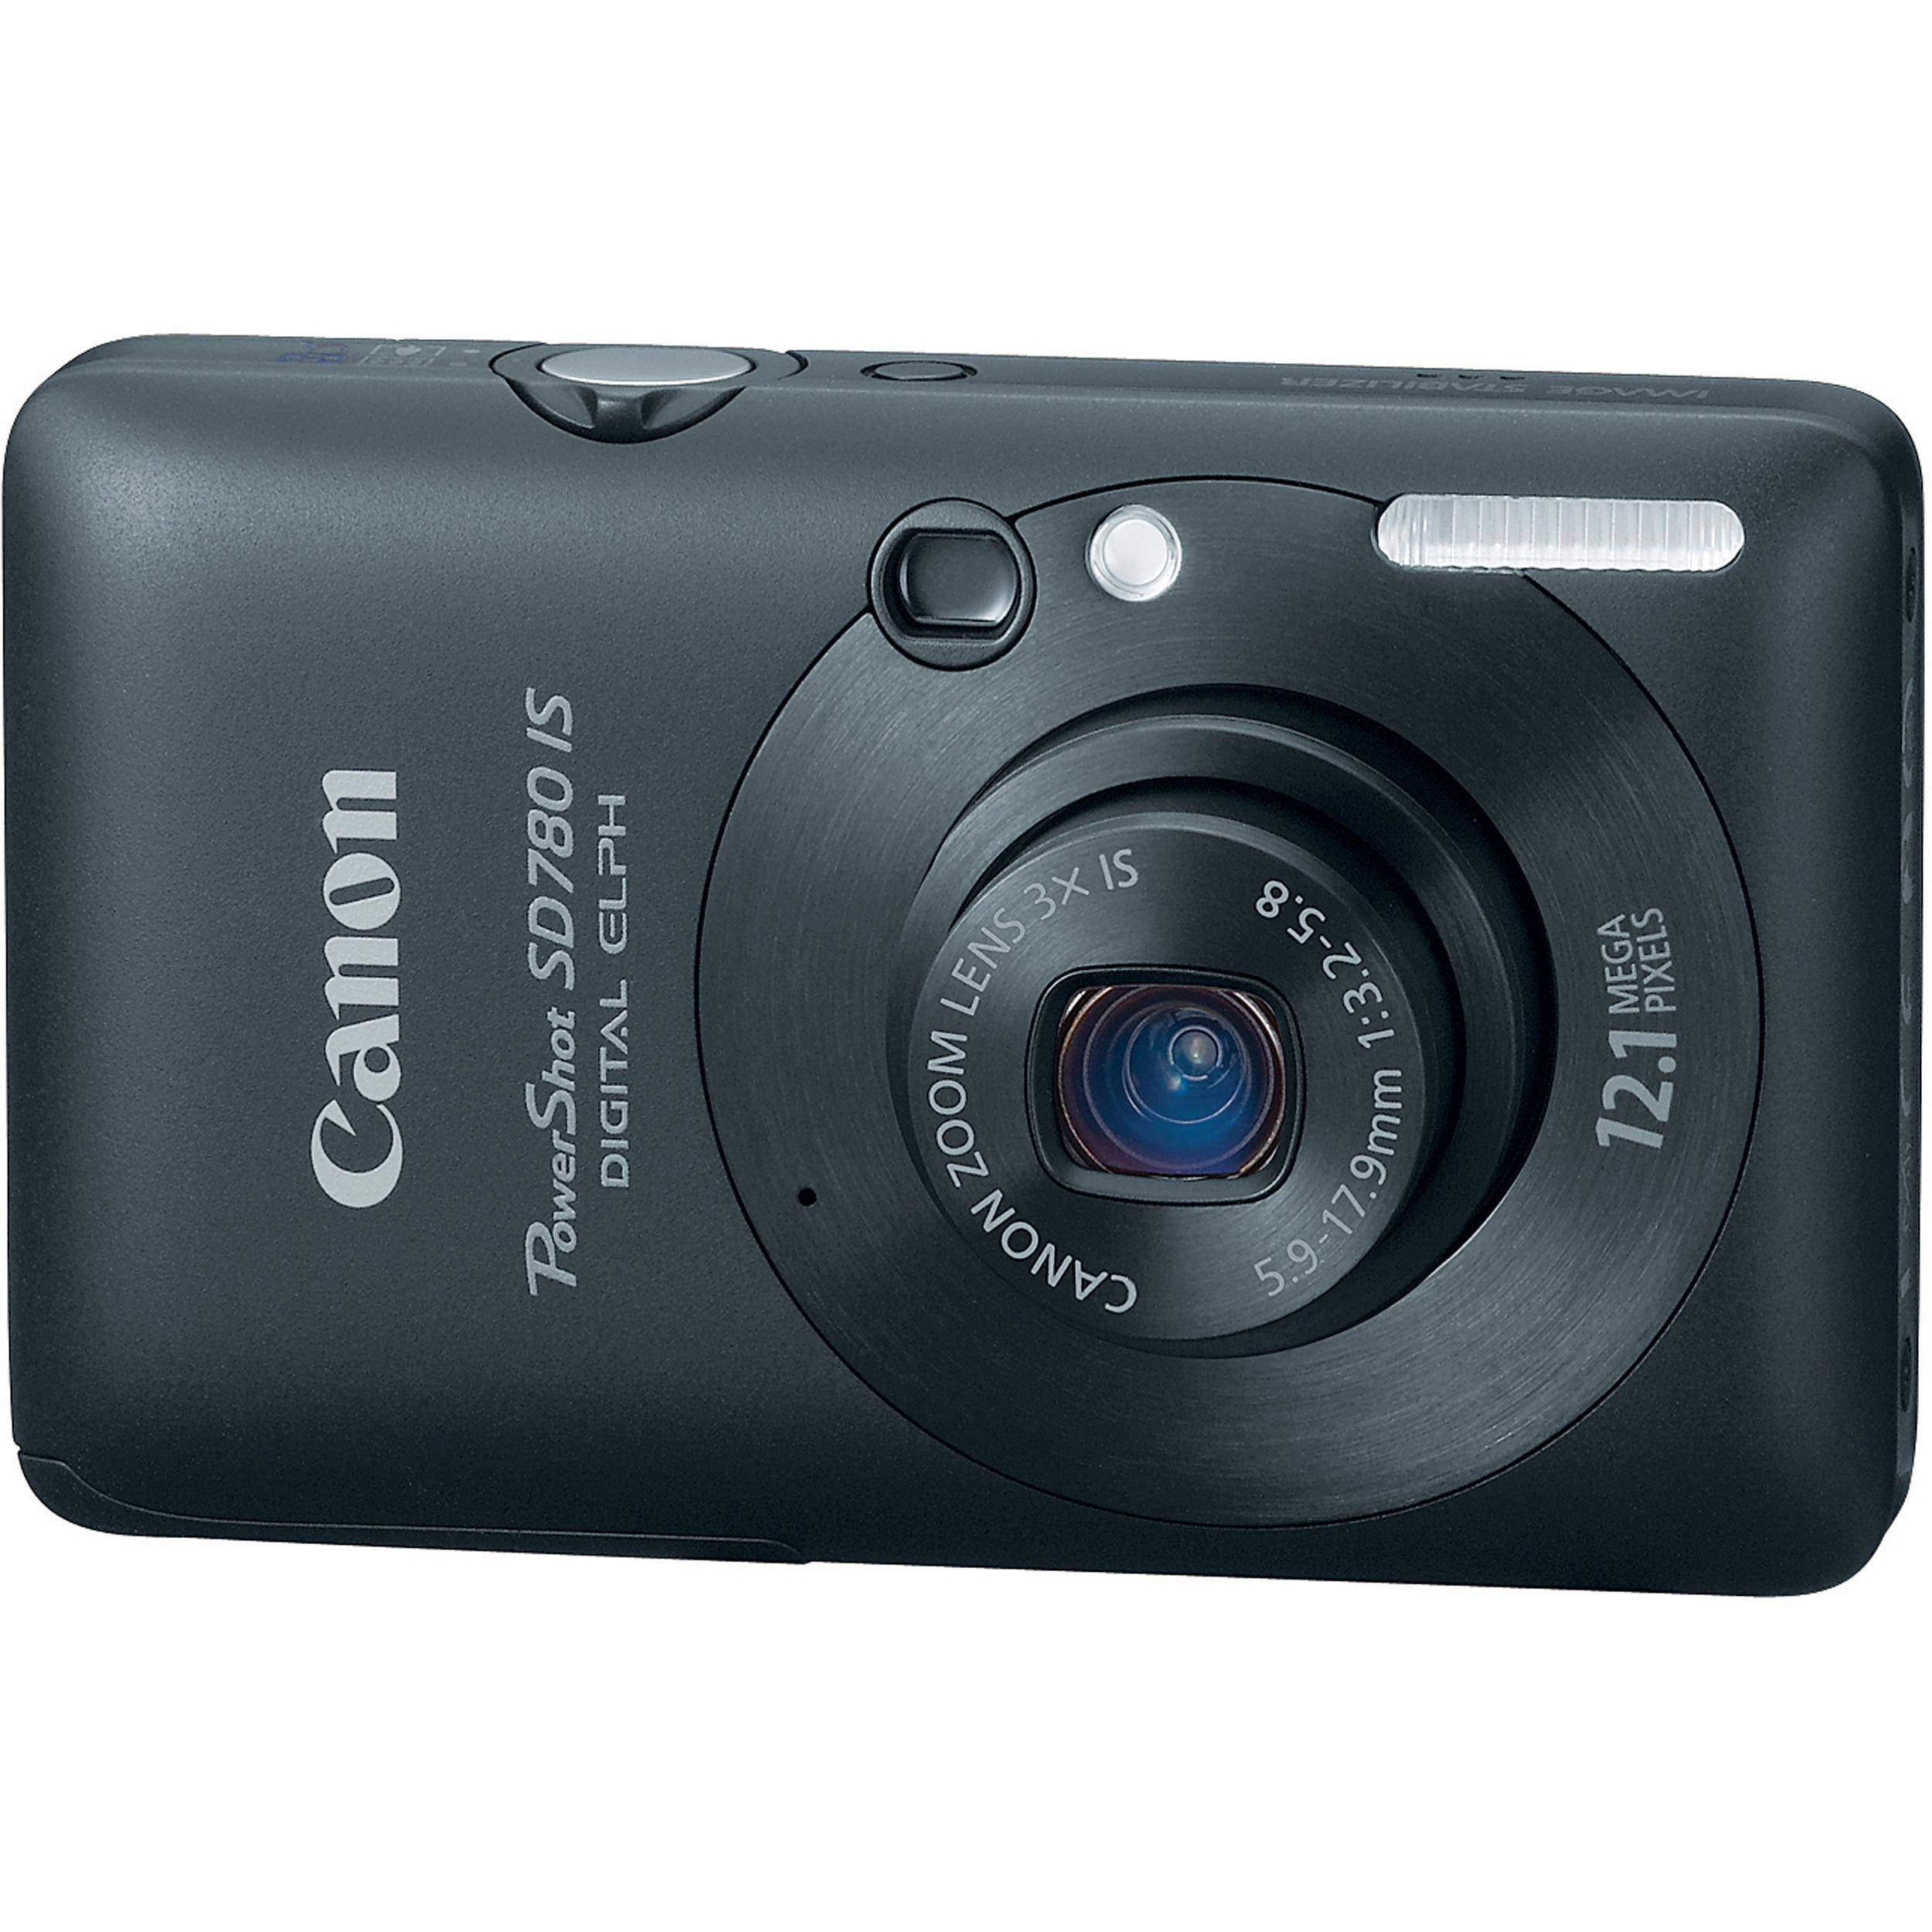 CANON SD780 DRIVERS FOR WINDOWS 8